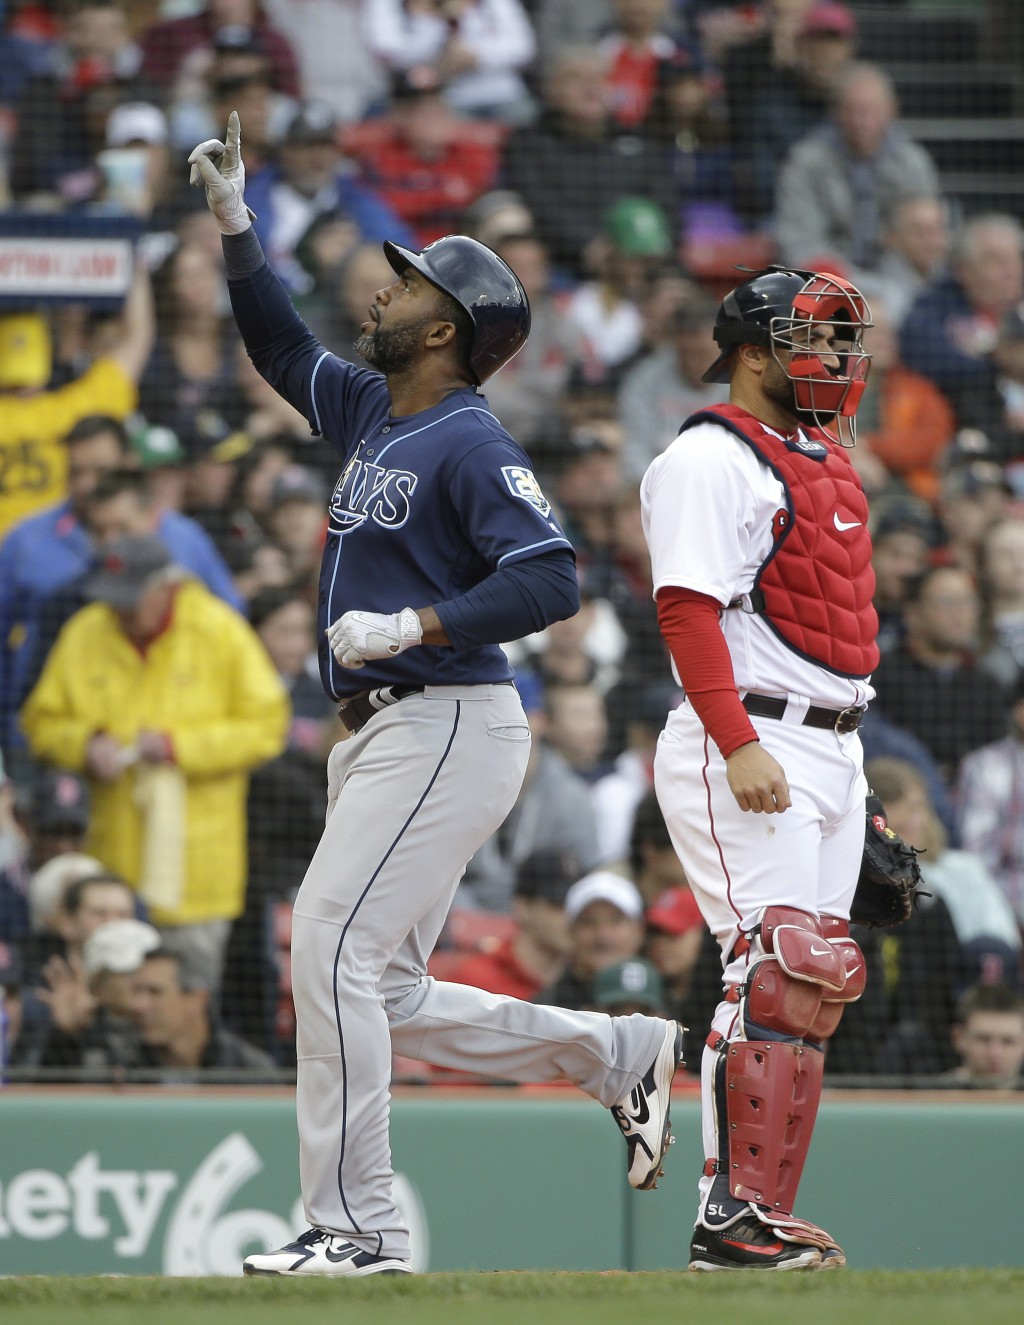 Tampa Bay Rays' Denard Span, left, celebrates as he scores on a two-run home run as Boston Red Sox's Sandy Leon, right, looks on in the third inning o...